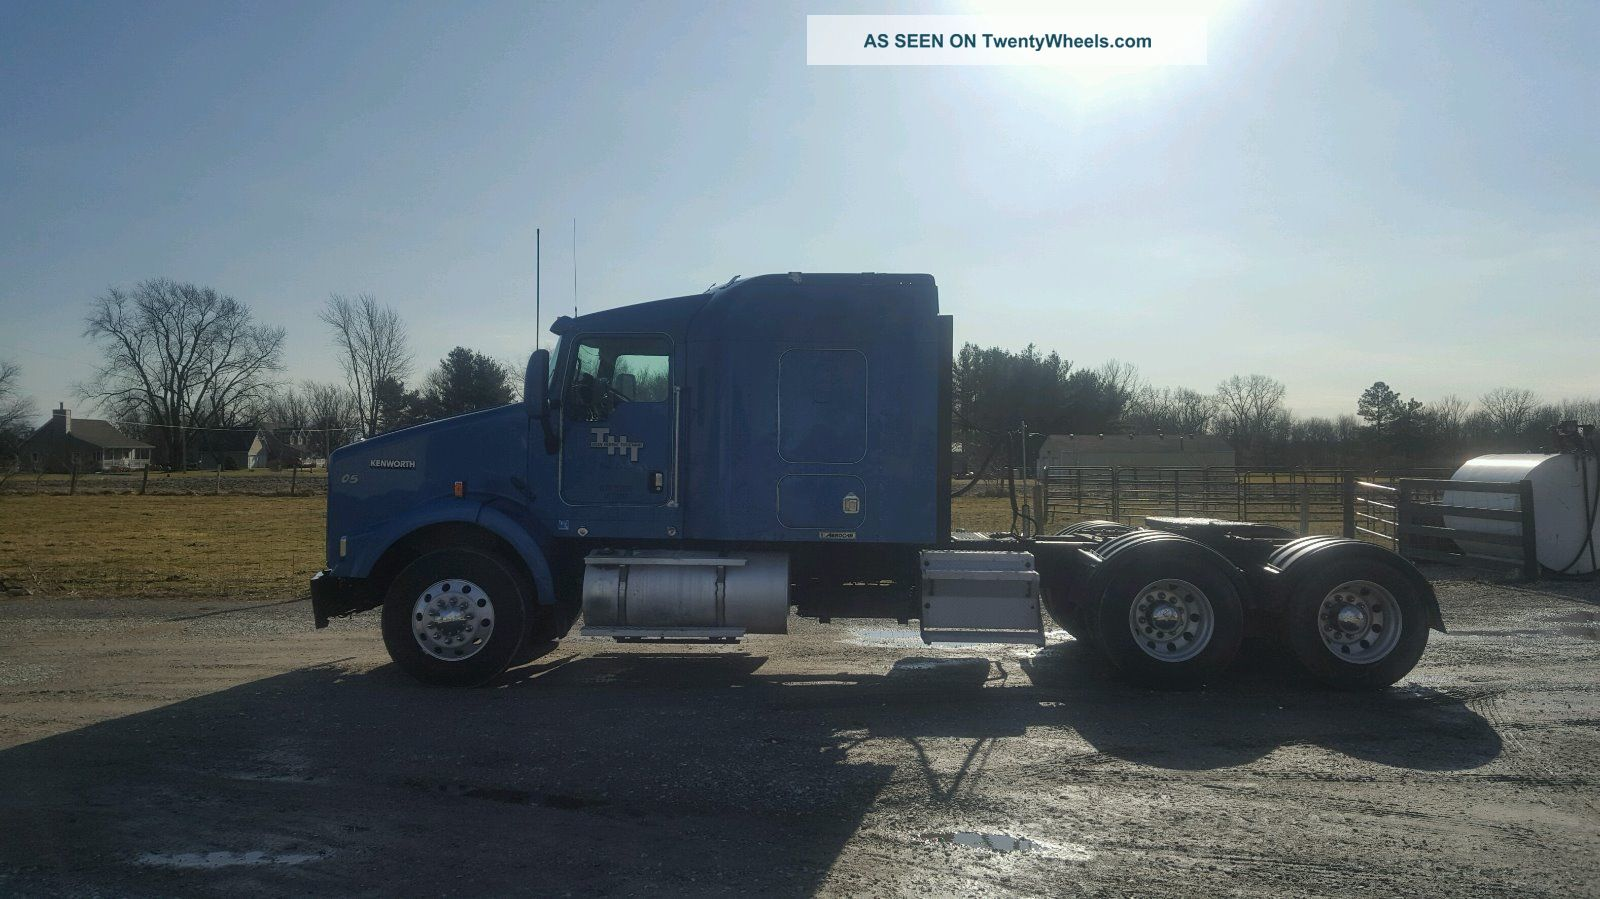 2005 Kenworth T800 Sleeper Semi Trucks photo